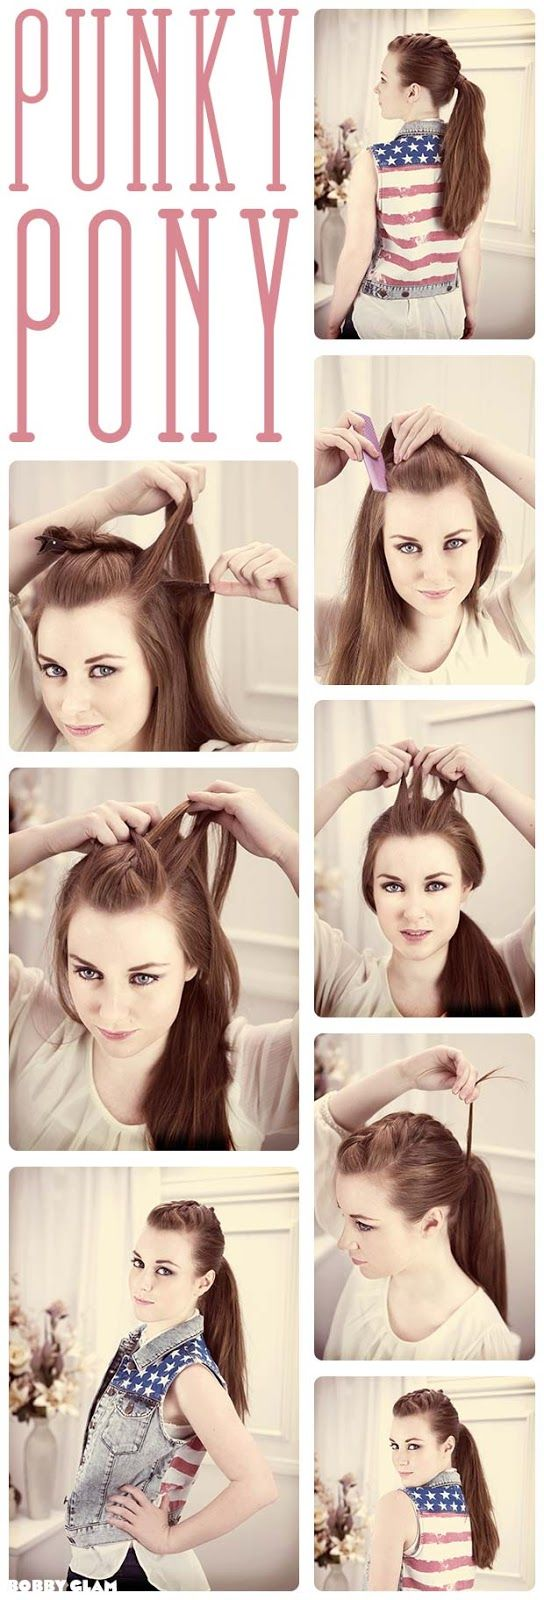 Punky Ponytail Hair Tutorial | hairstyles tutorial